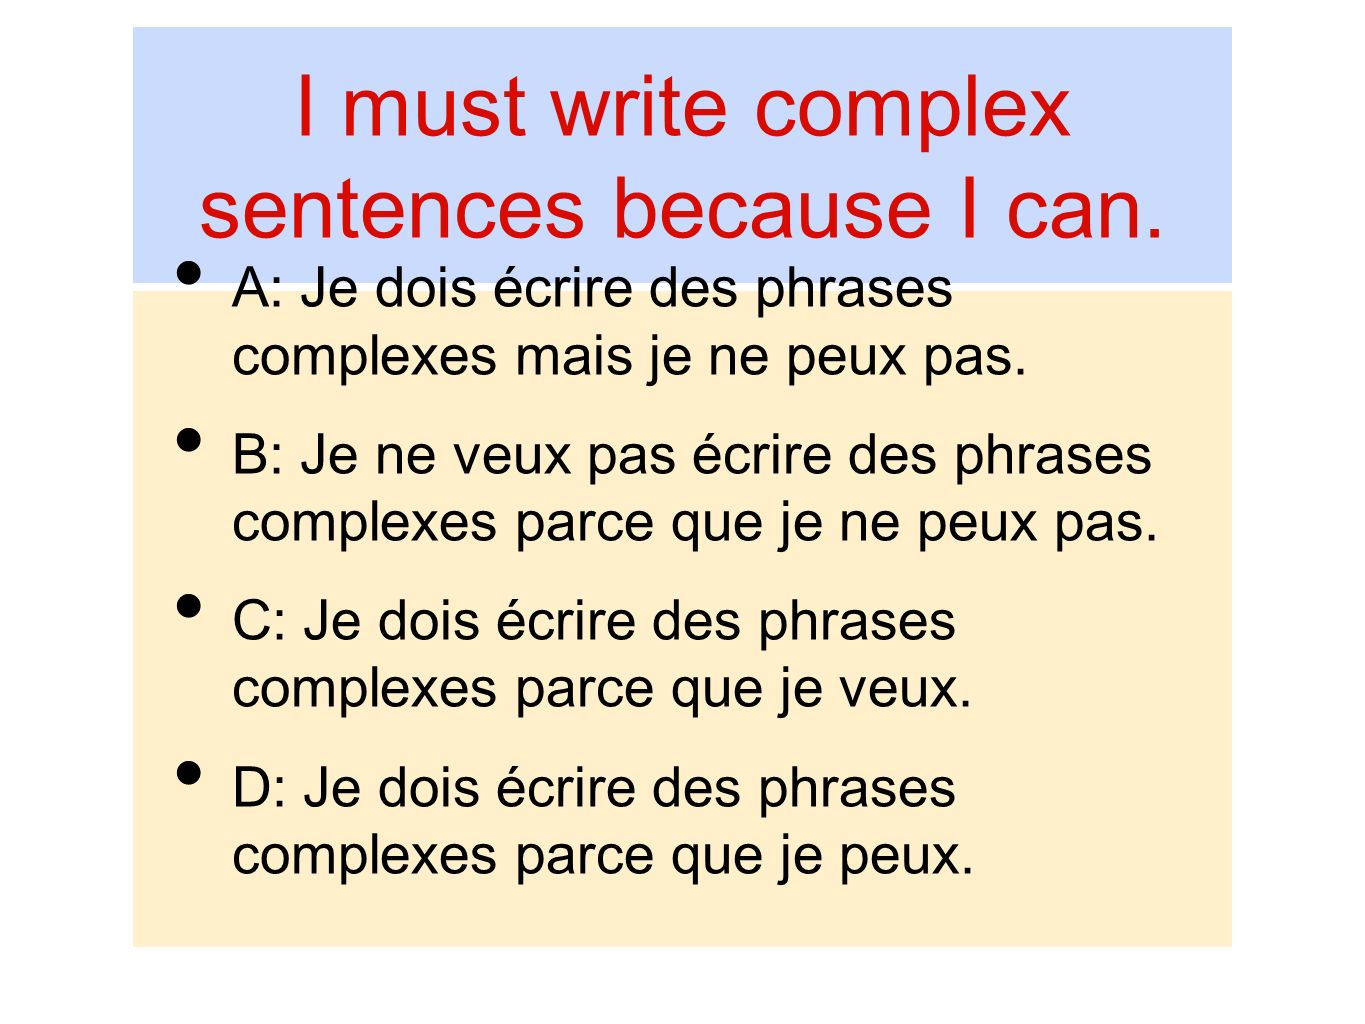 I must write complex sentences because I can.